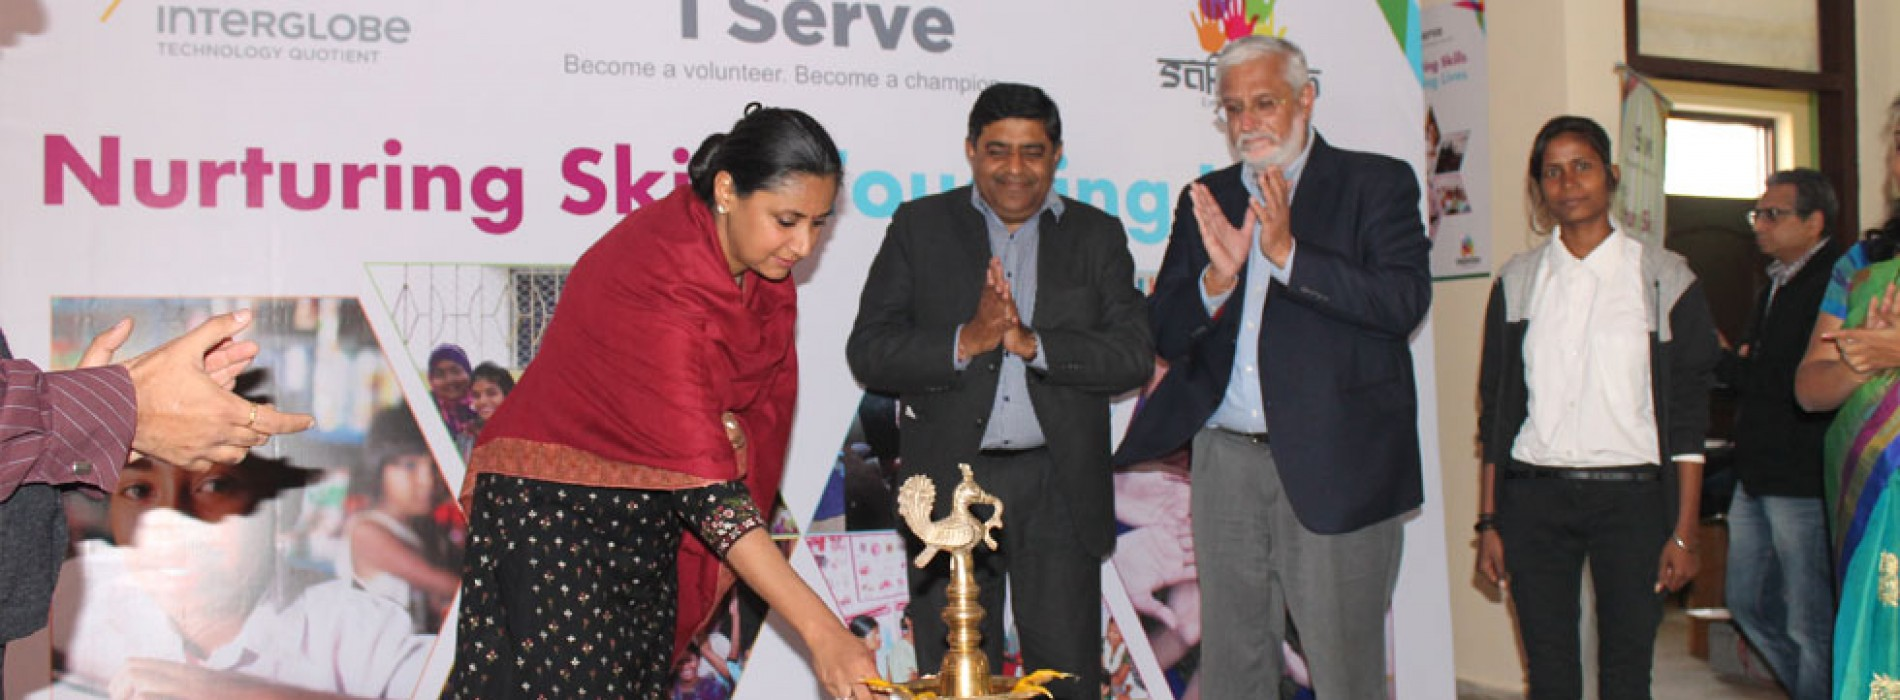 InterGlobe Technology Quotient and CAP Foundation launch a Skill Development Initiative